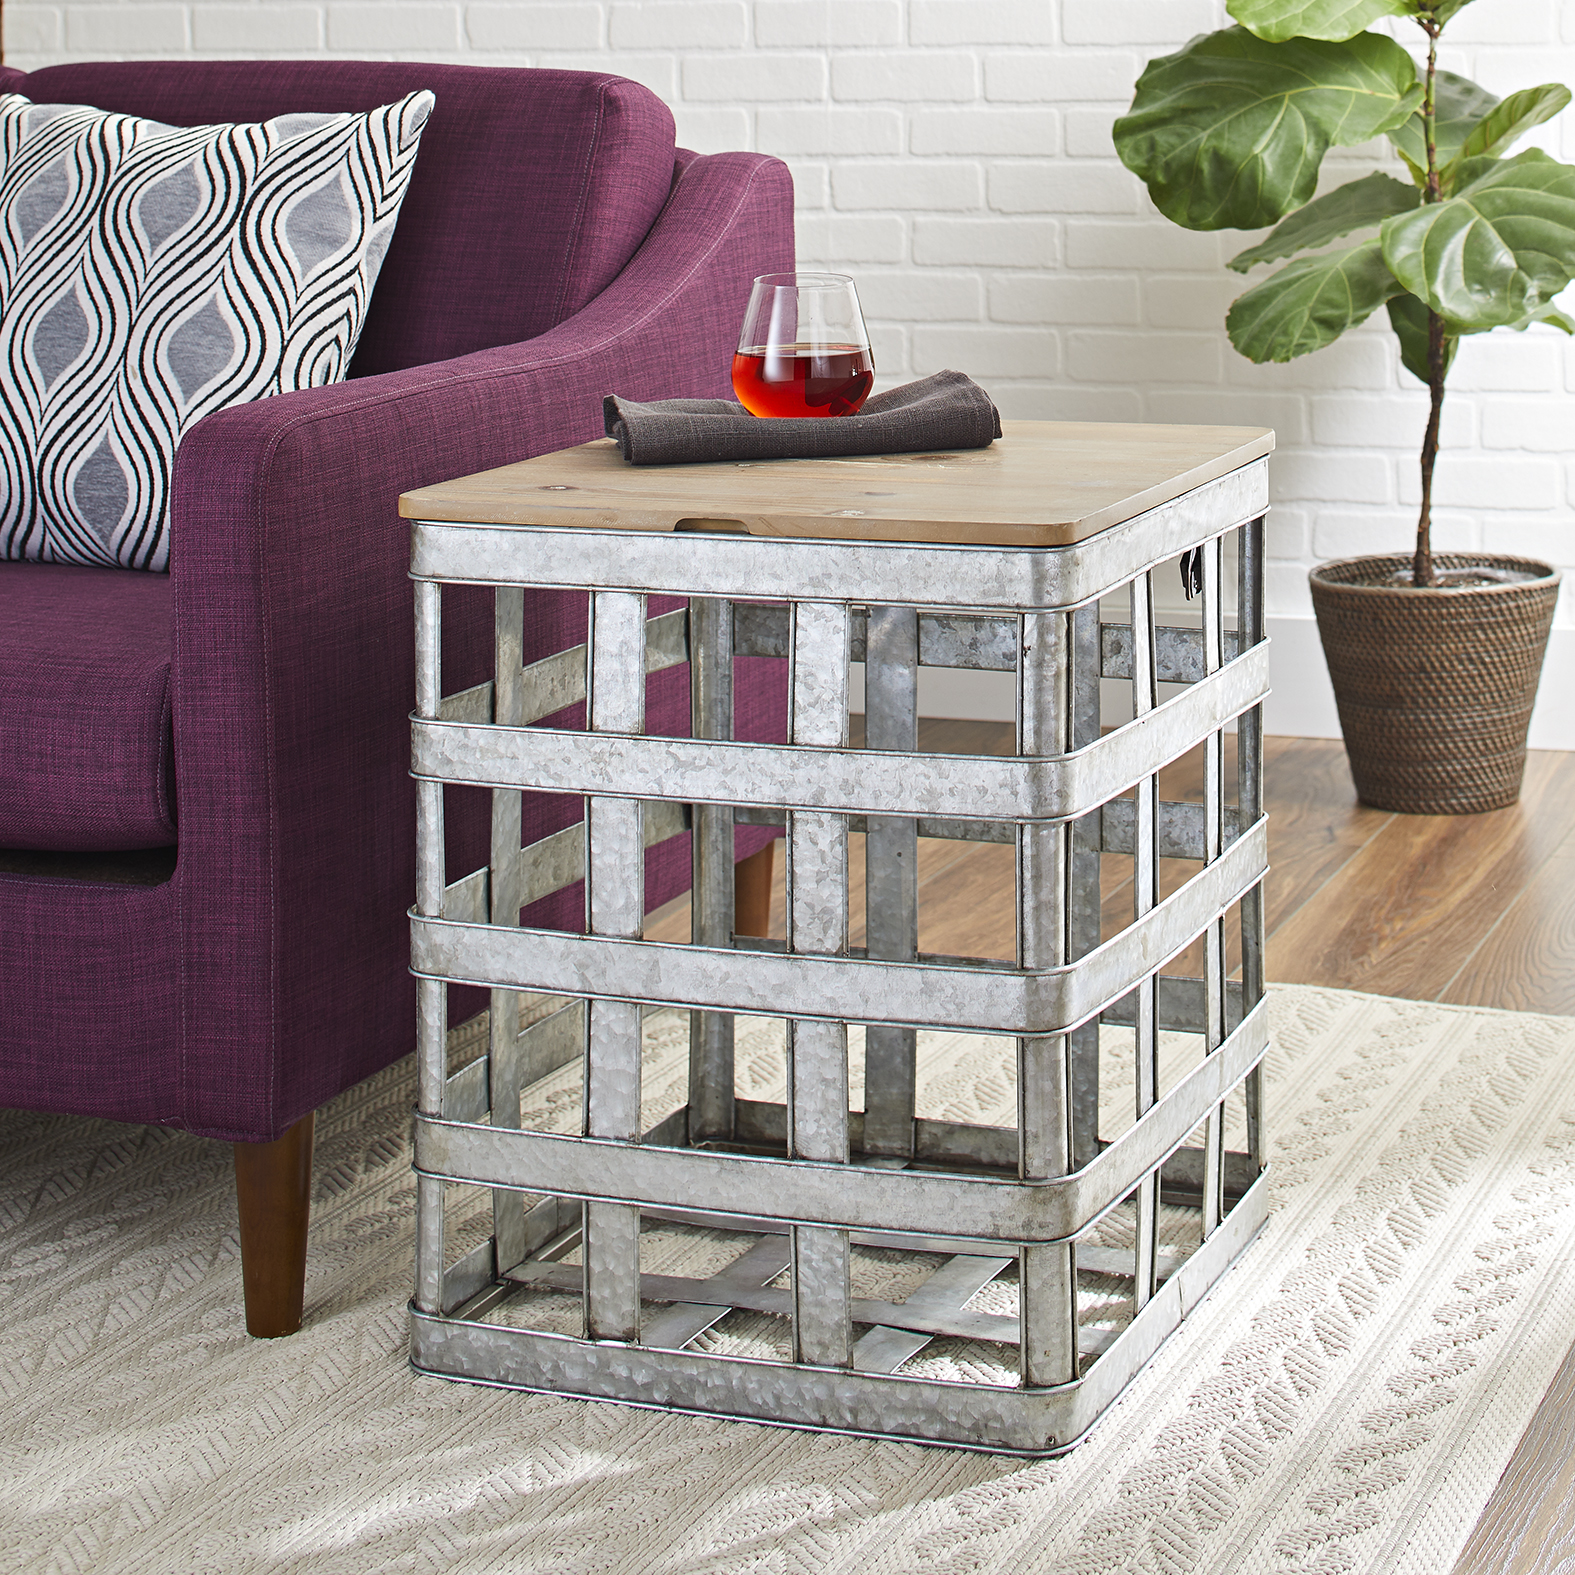 better homes and gardens wood galvanized metal lift top accent table silver glass nesting tables set black storage cabinet round pineapple umbrella slide bolt lock luxury